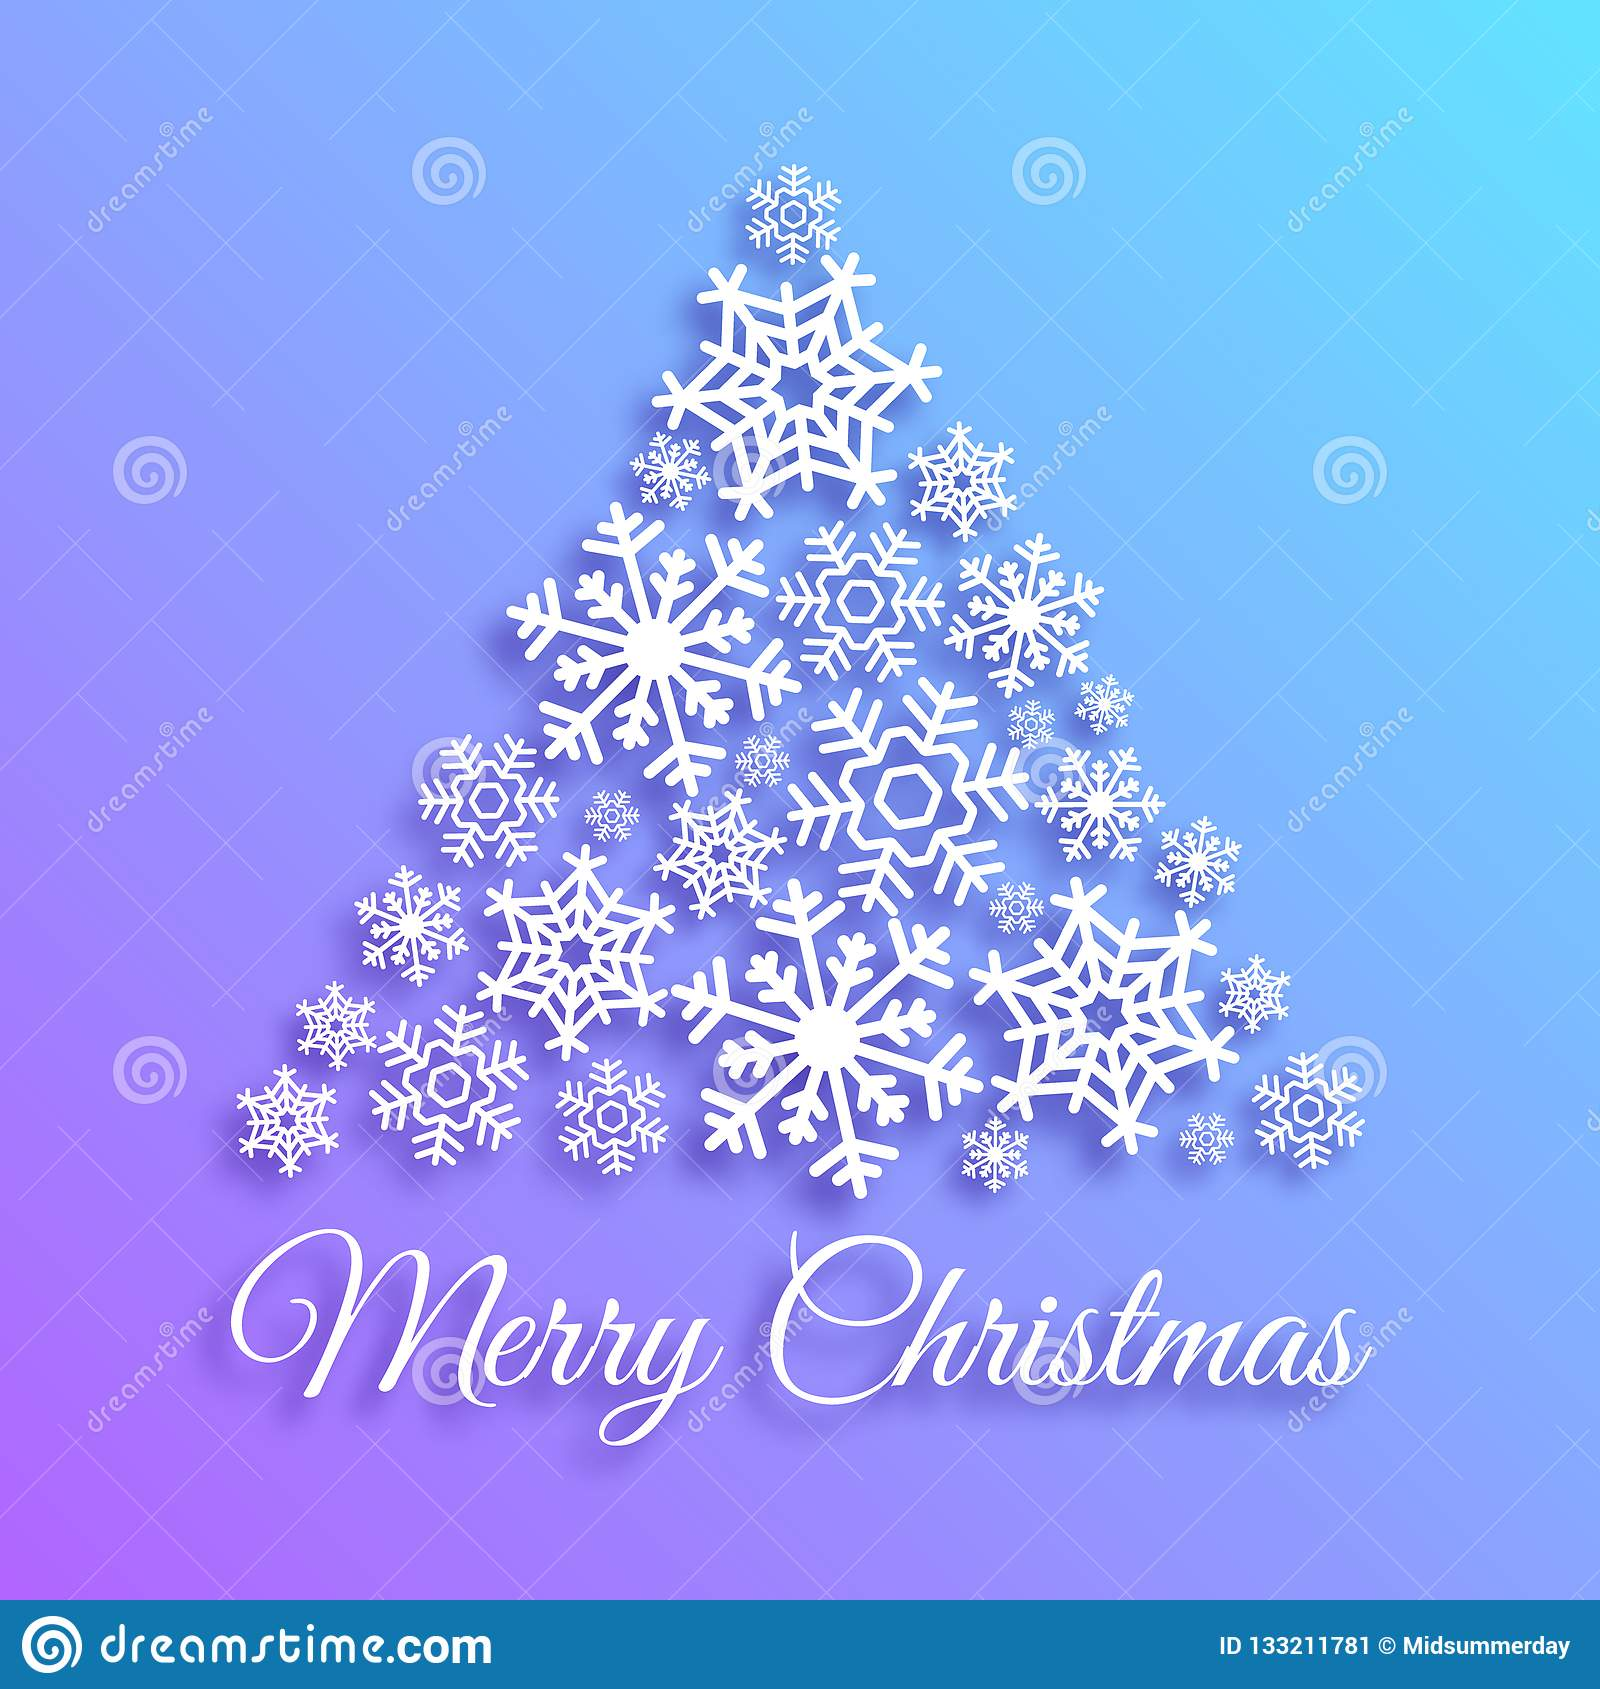 Merry Christmas greeting card with christmas tree made of white snowflakes. Xmas vector background template. Elegant